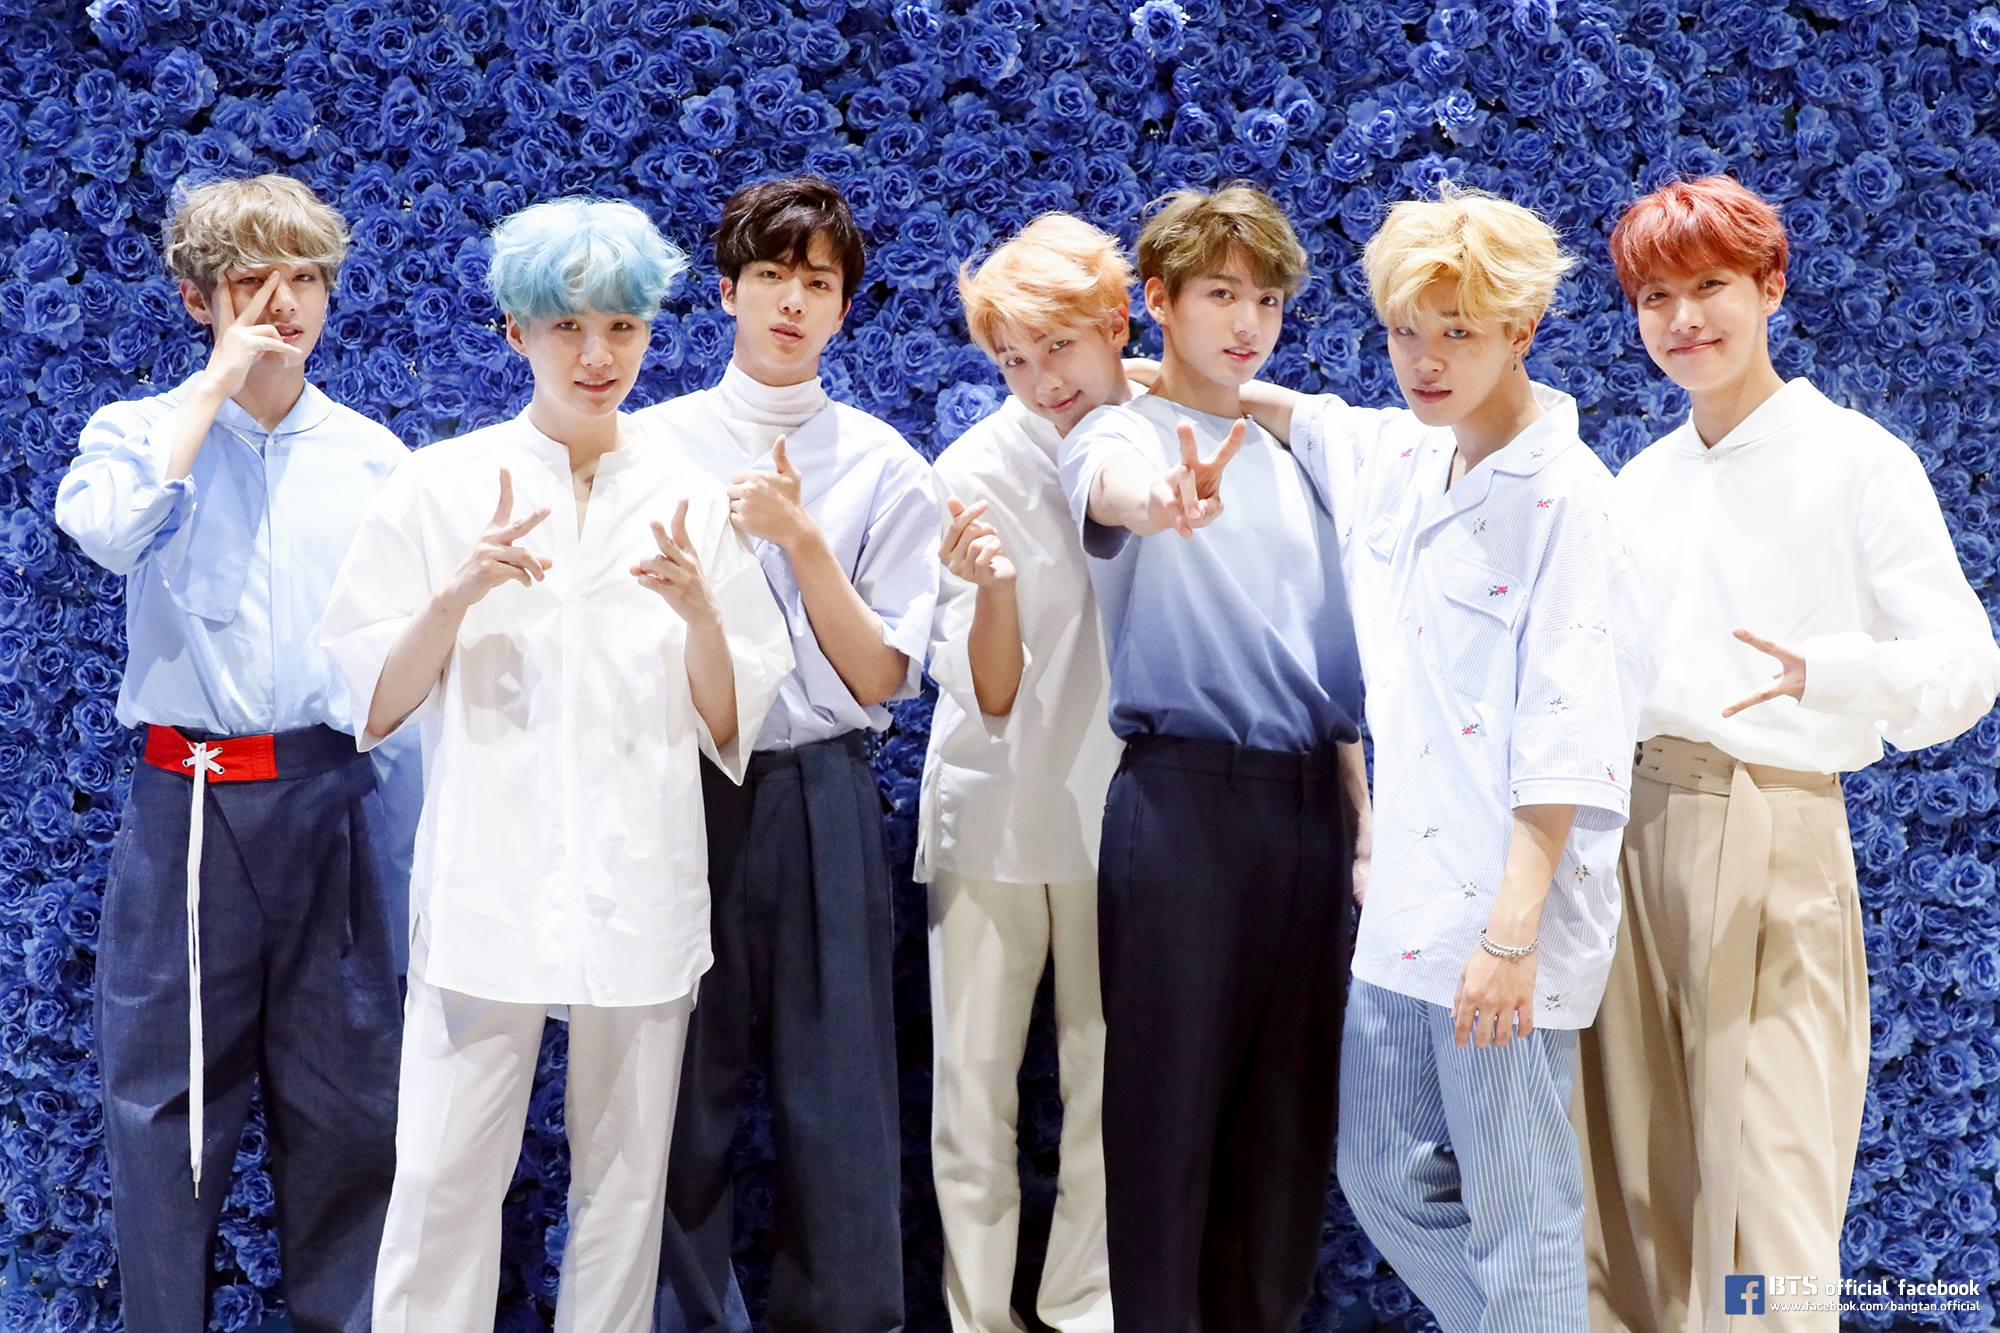 bts released 25 special